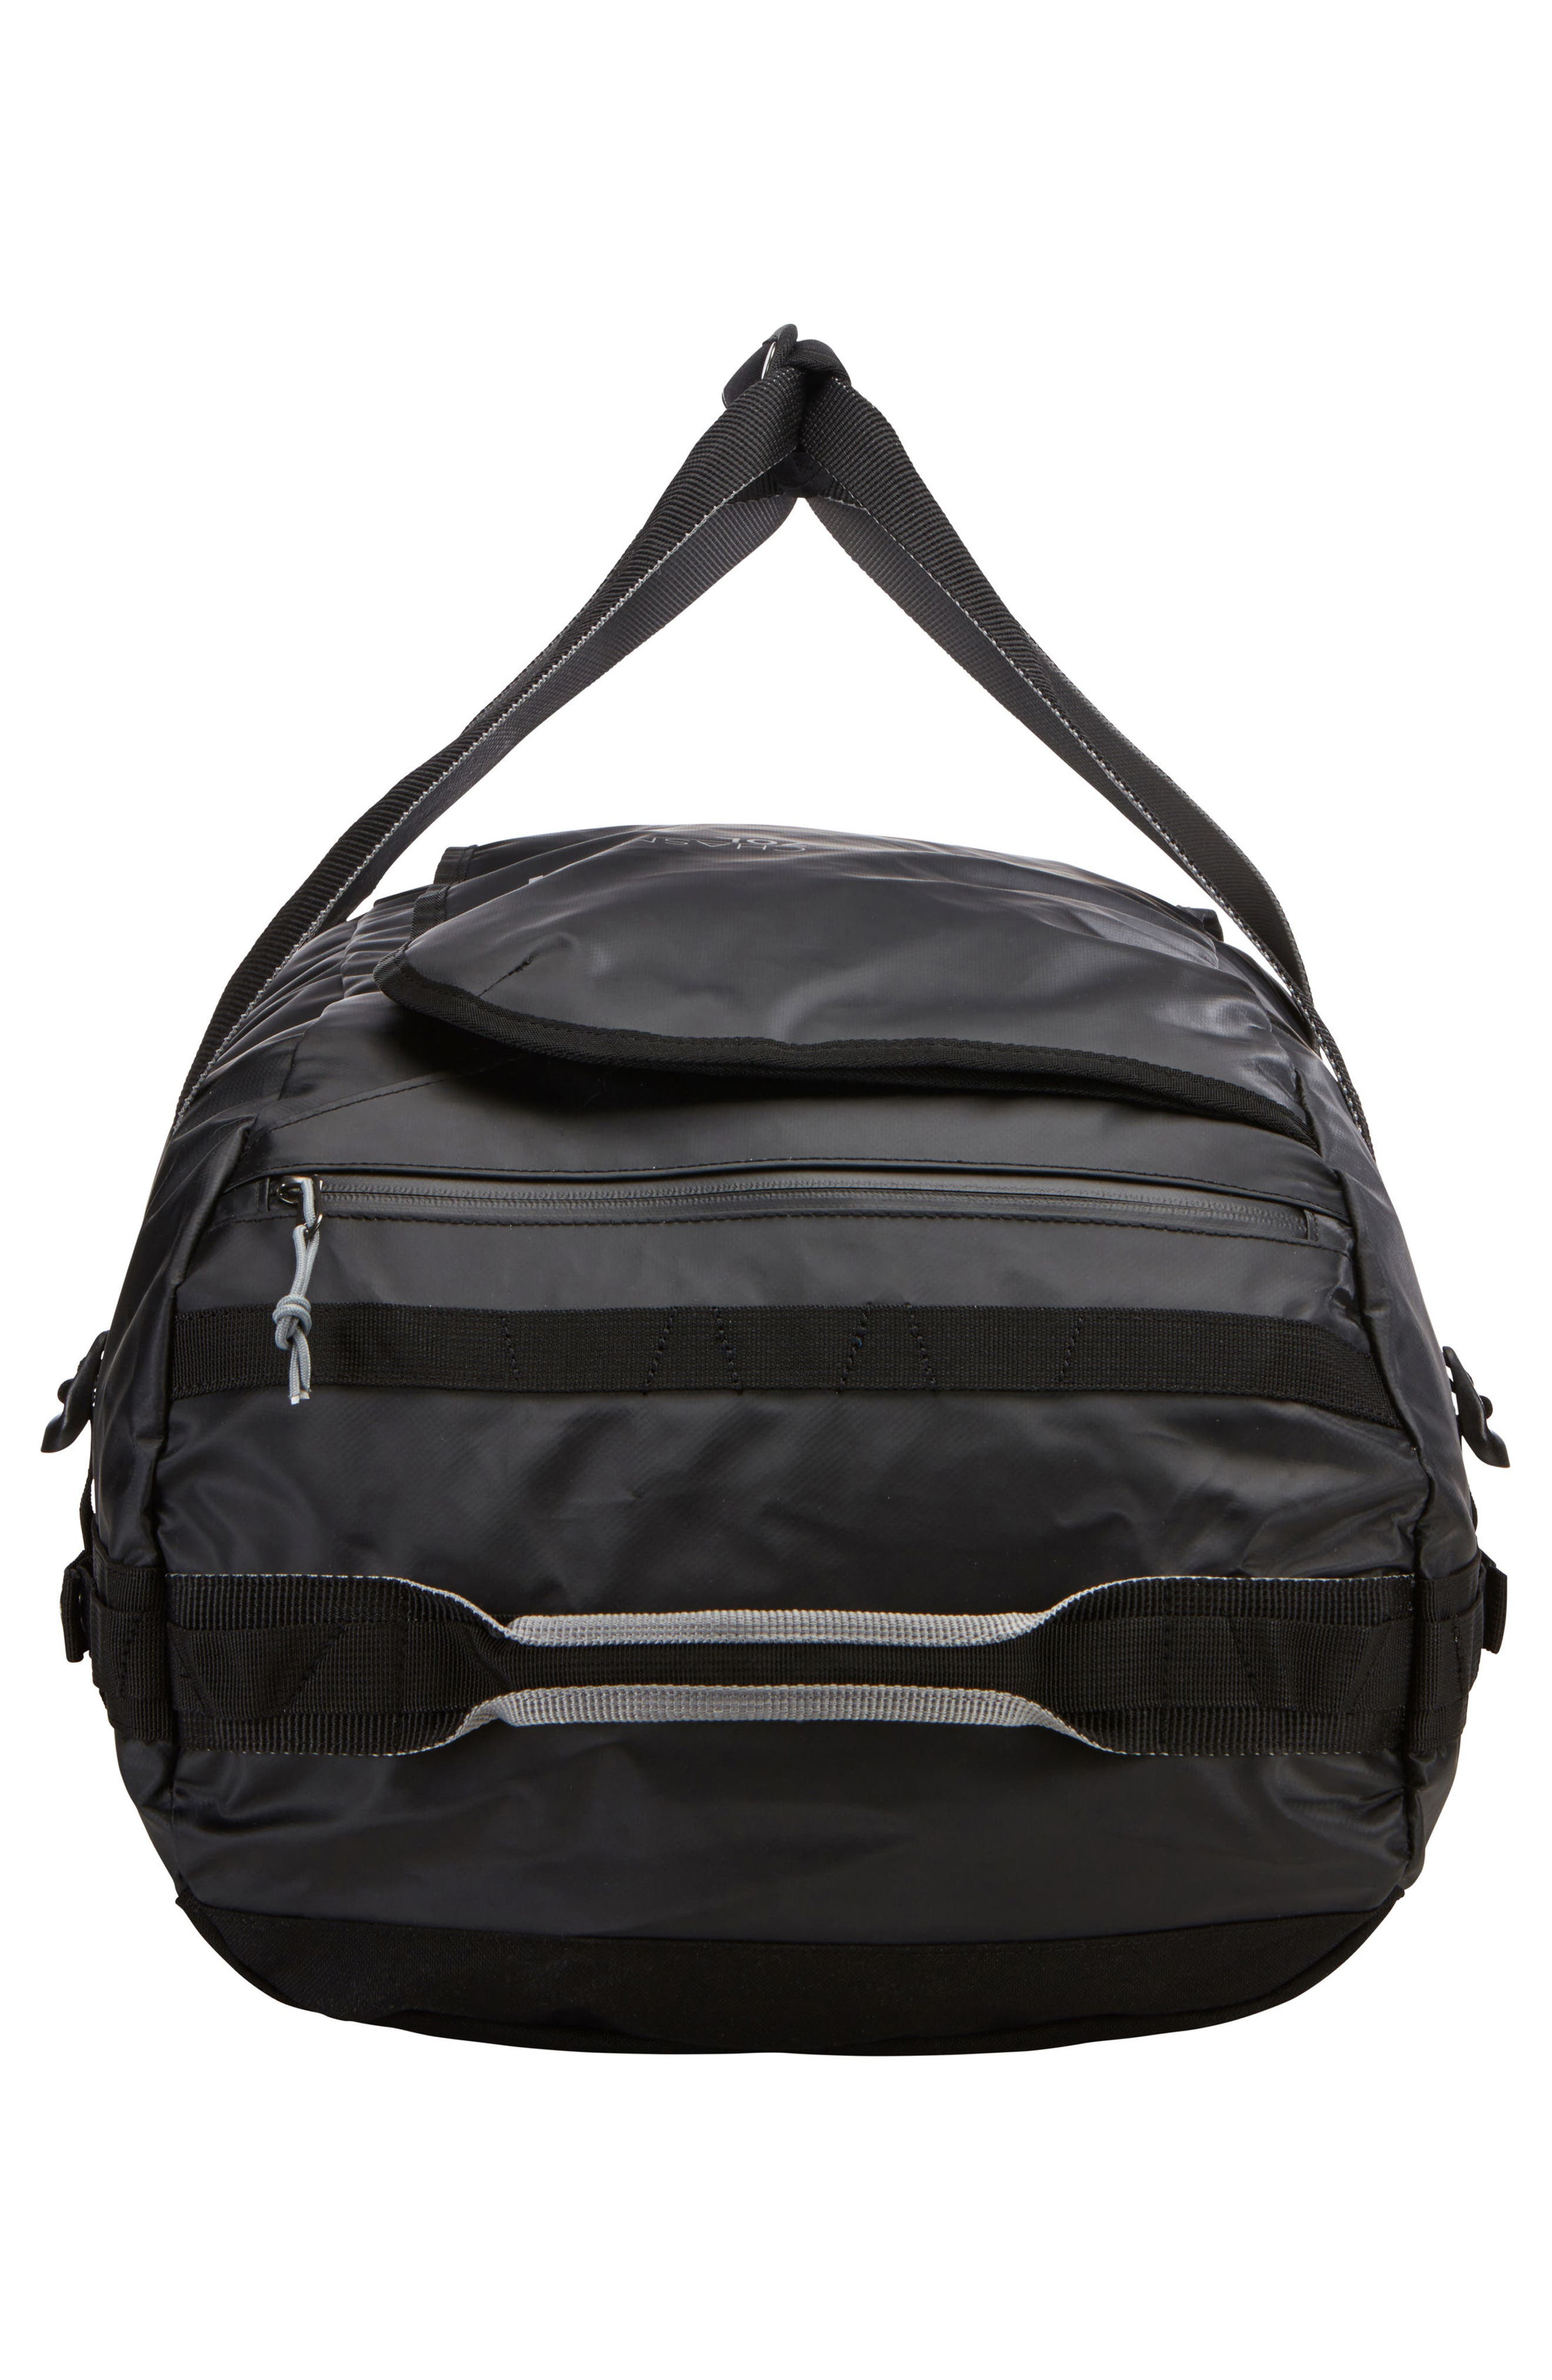 Chasm 70-Liter Convertible Duffel Bag,                             Alternate thumbnail 4, color,                             BLACK